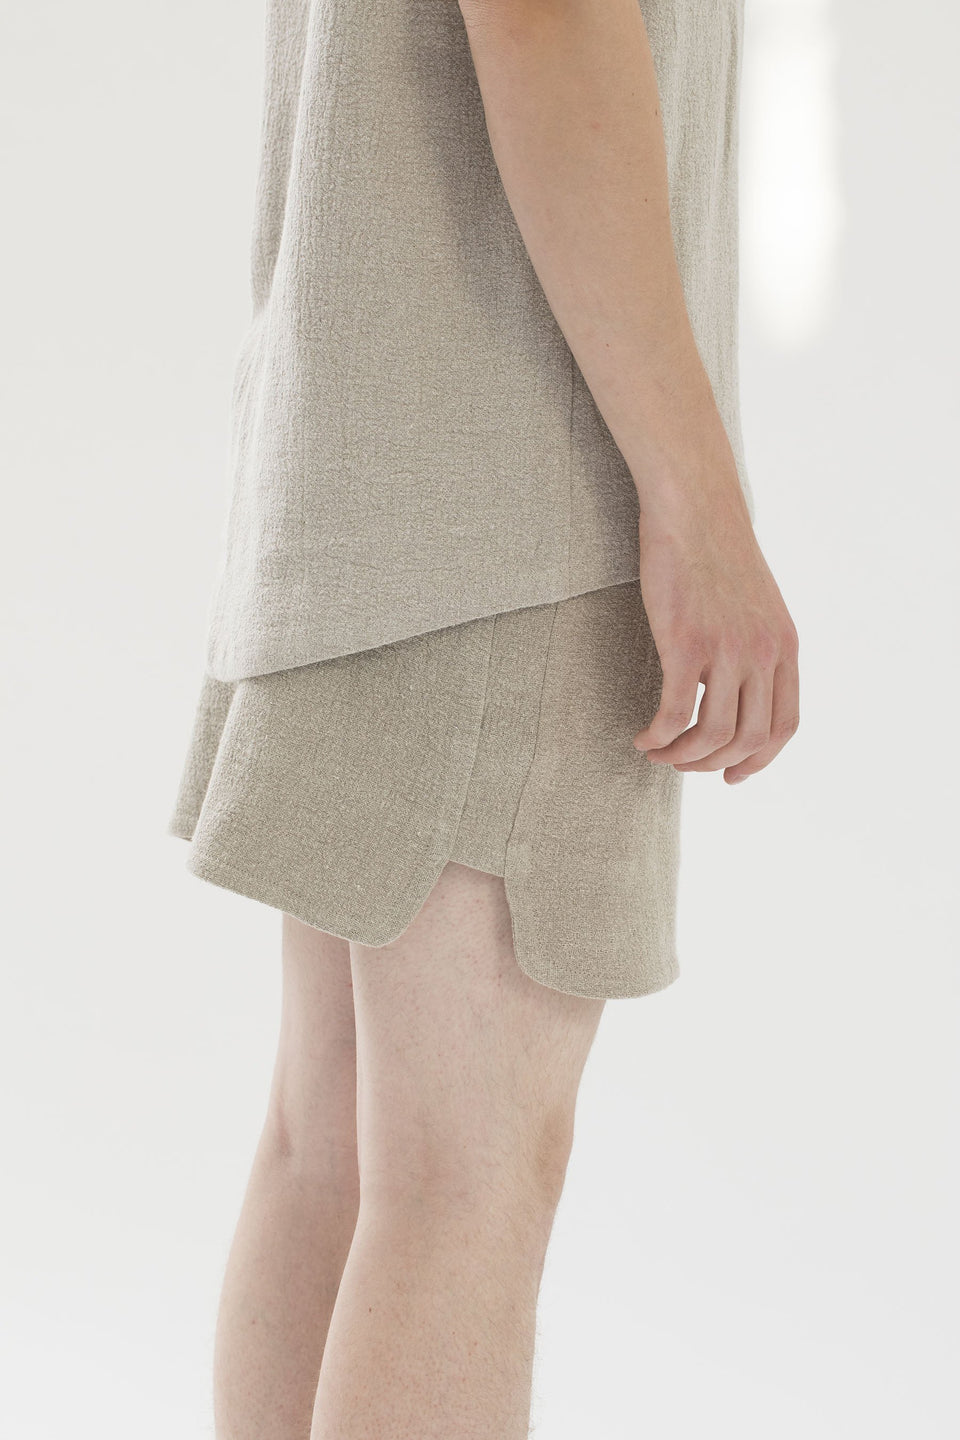 RAW Men Running Shorts Natural